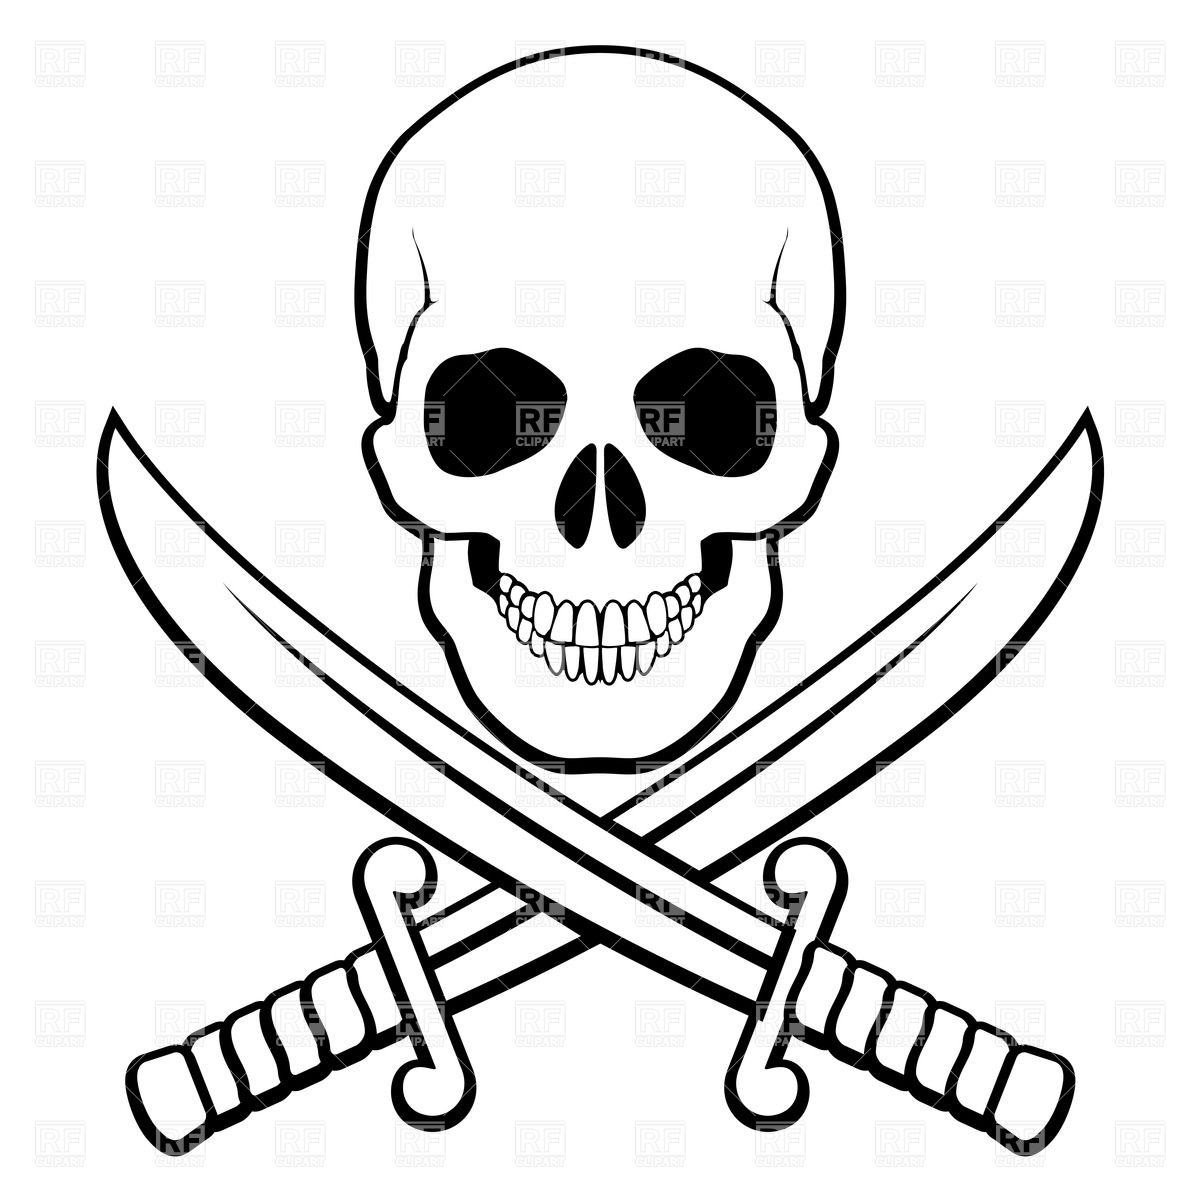 Sabers Beneath  Black And White Illustration Of Pirate Symbol Vector